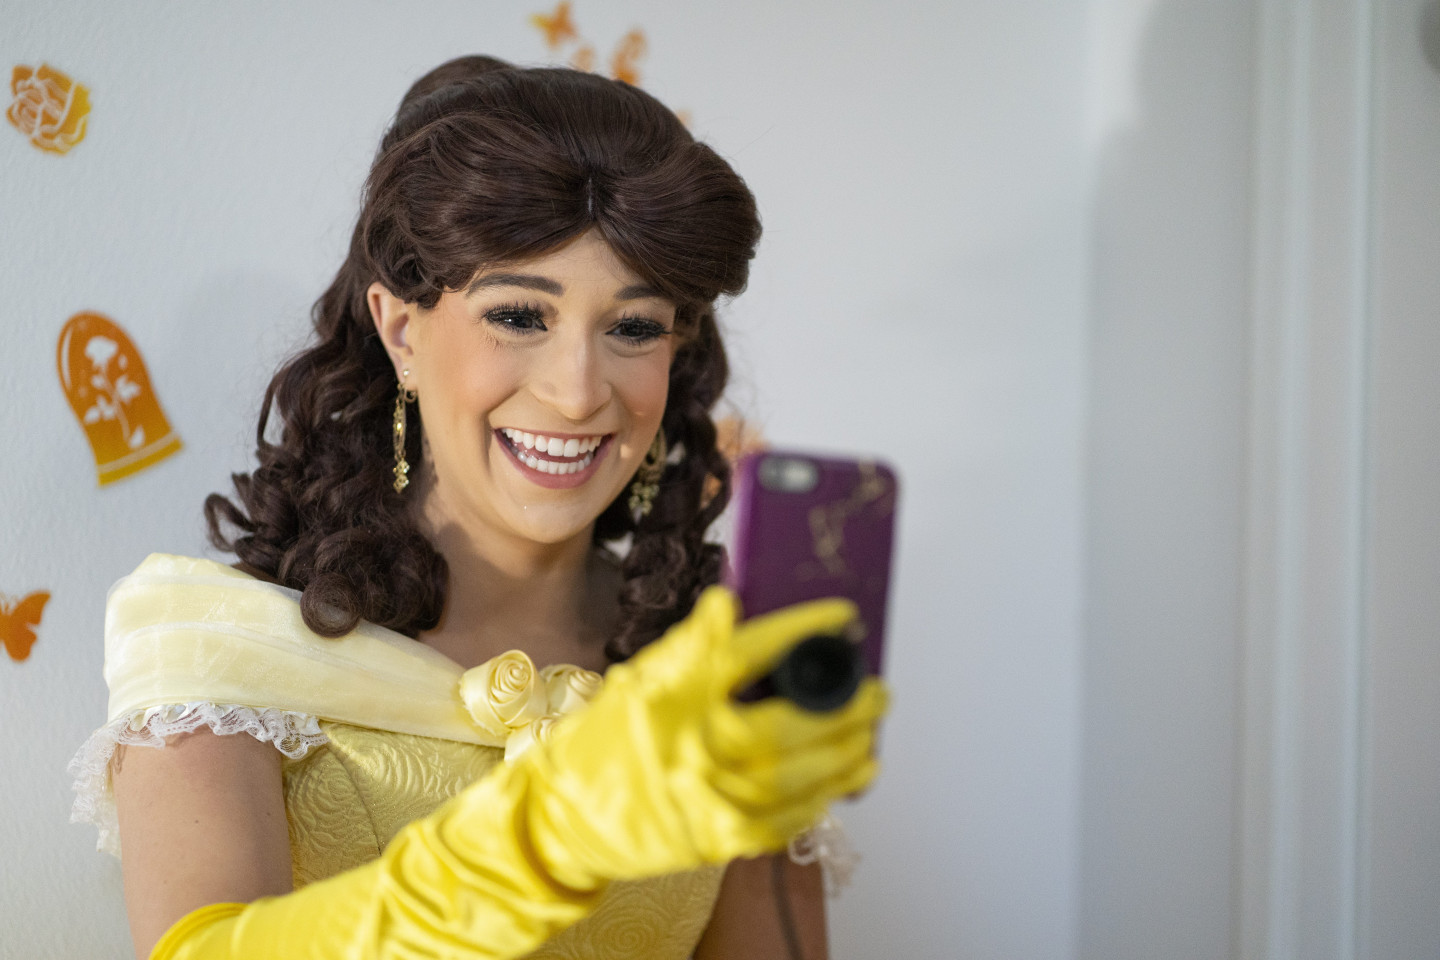 A student dressed as a princess smiles on a FaceTime call.